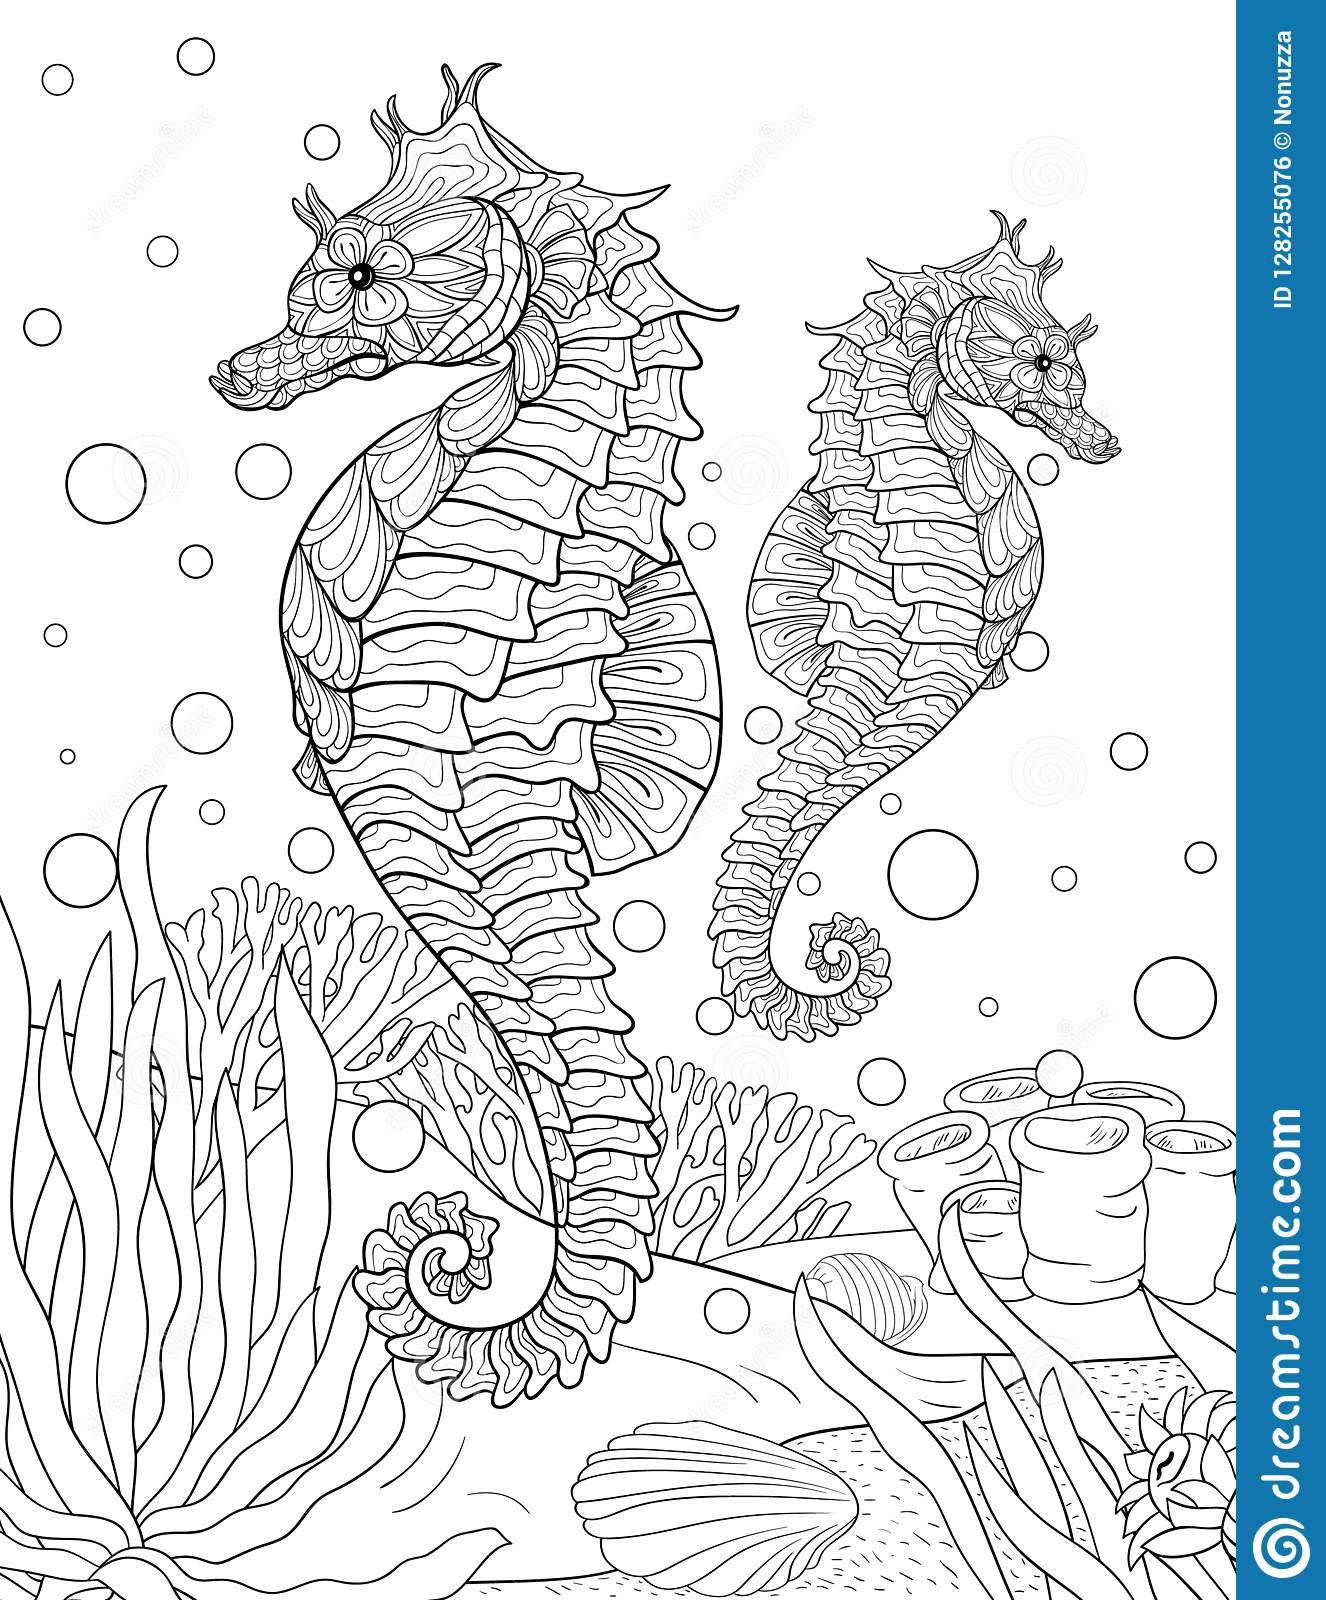 Adult Coloring Book,page Two Sea Horses For Relaxing.Zen Art Style ...